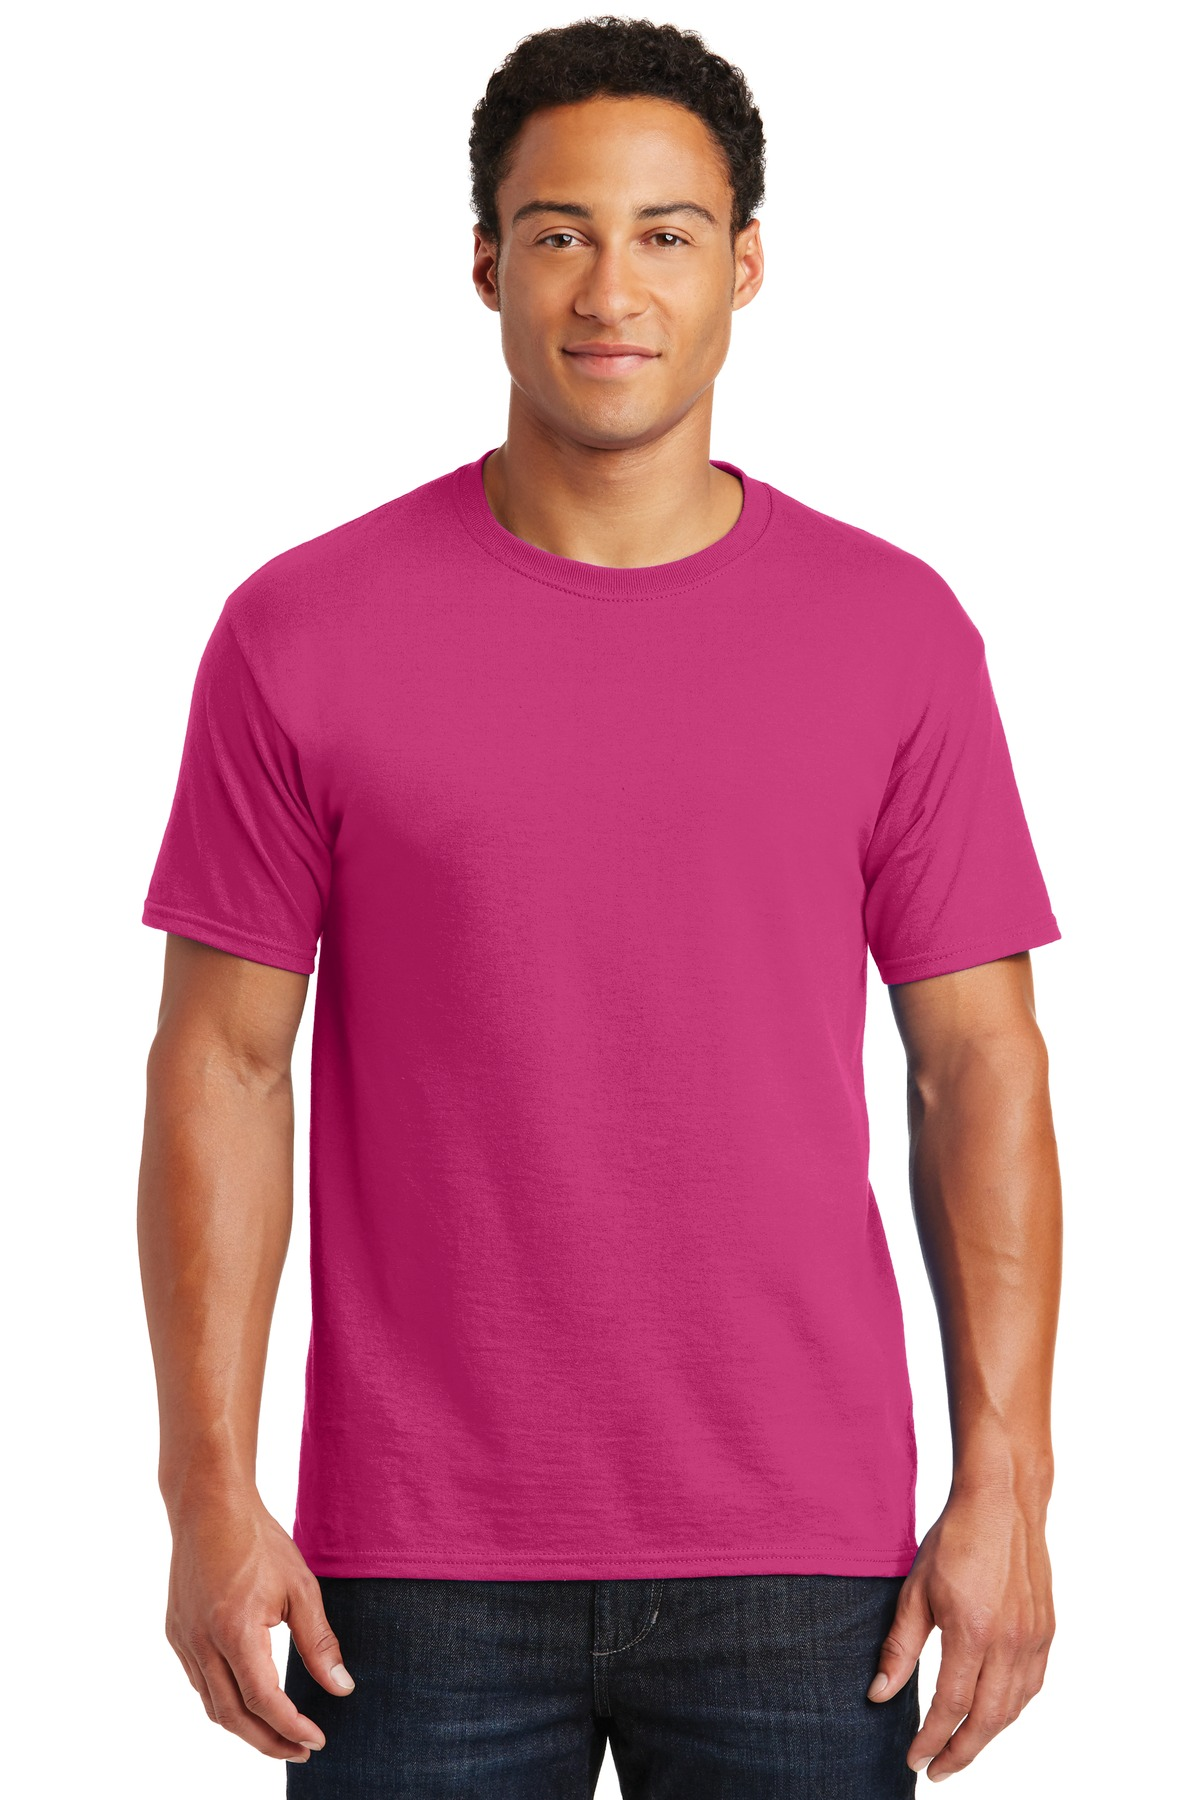 JERZEES ®  -  Dri-Power ®  Active 50/50 Cotton/Poly T-Shirt.  29M - Cyber Pink